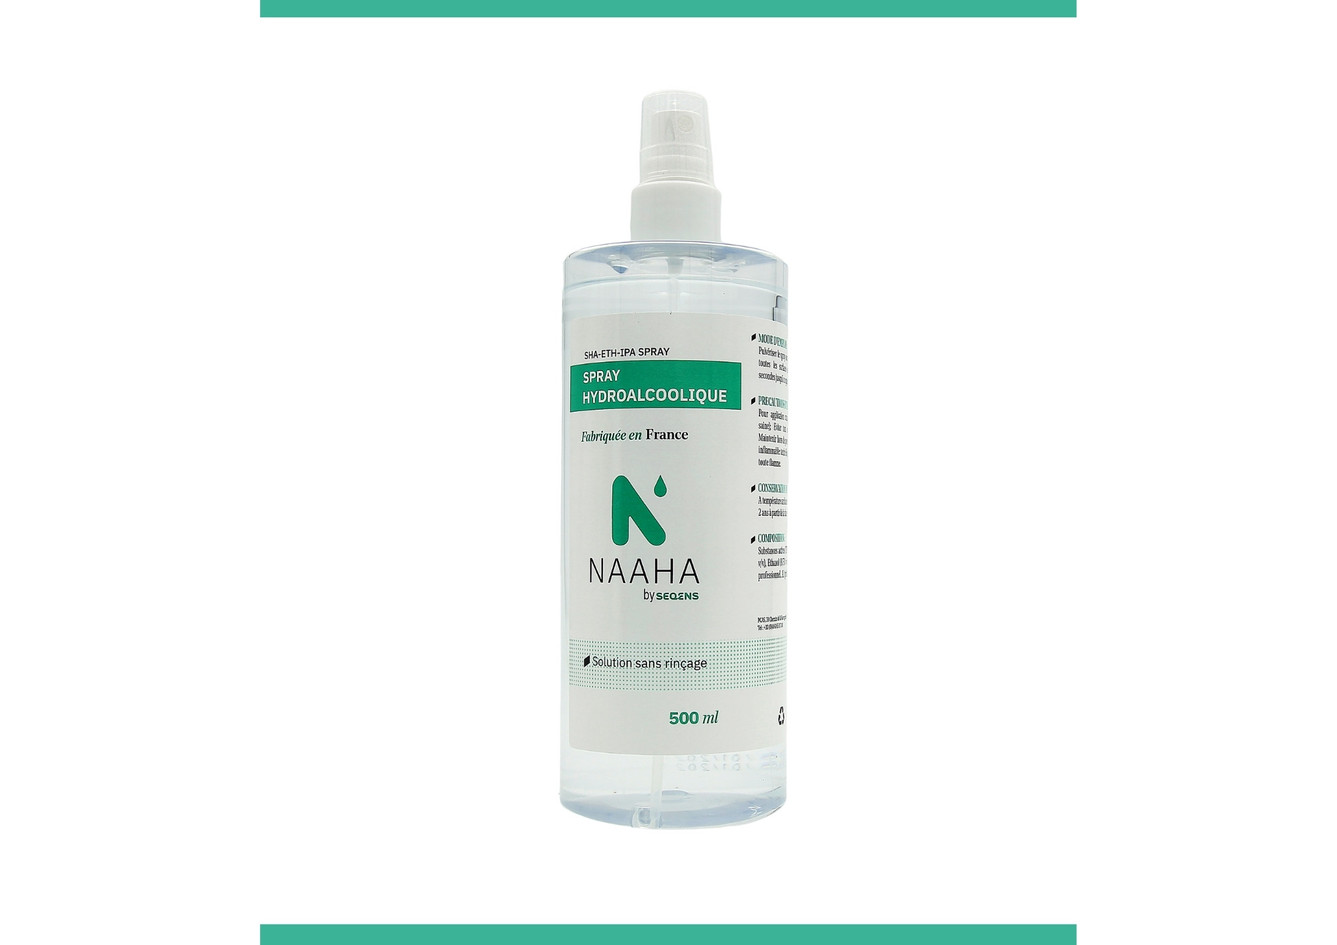 NAAHA 500 ml spray